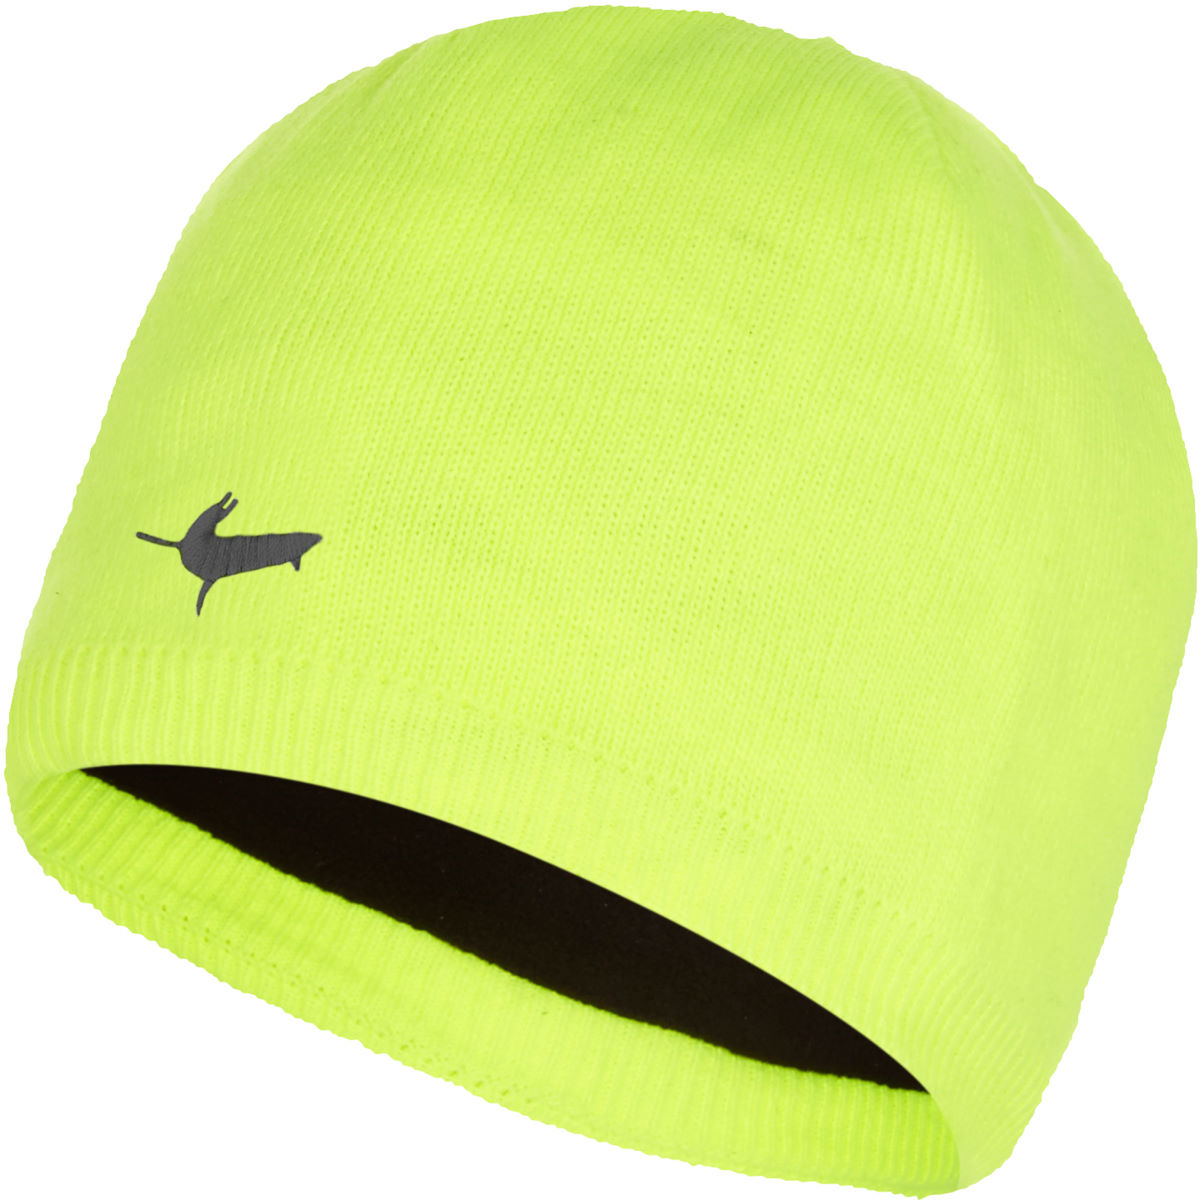 Bonnet SealSkinz Imperméable - S/M Hi Vis